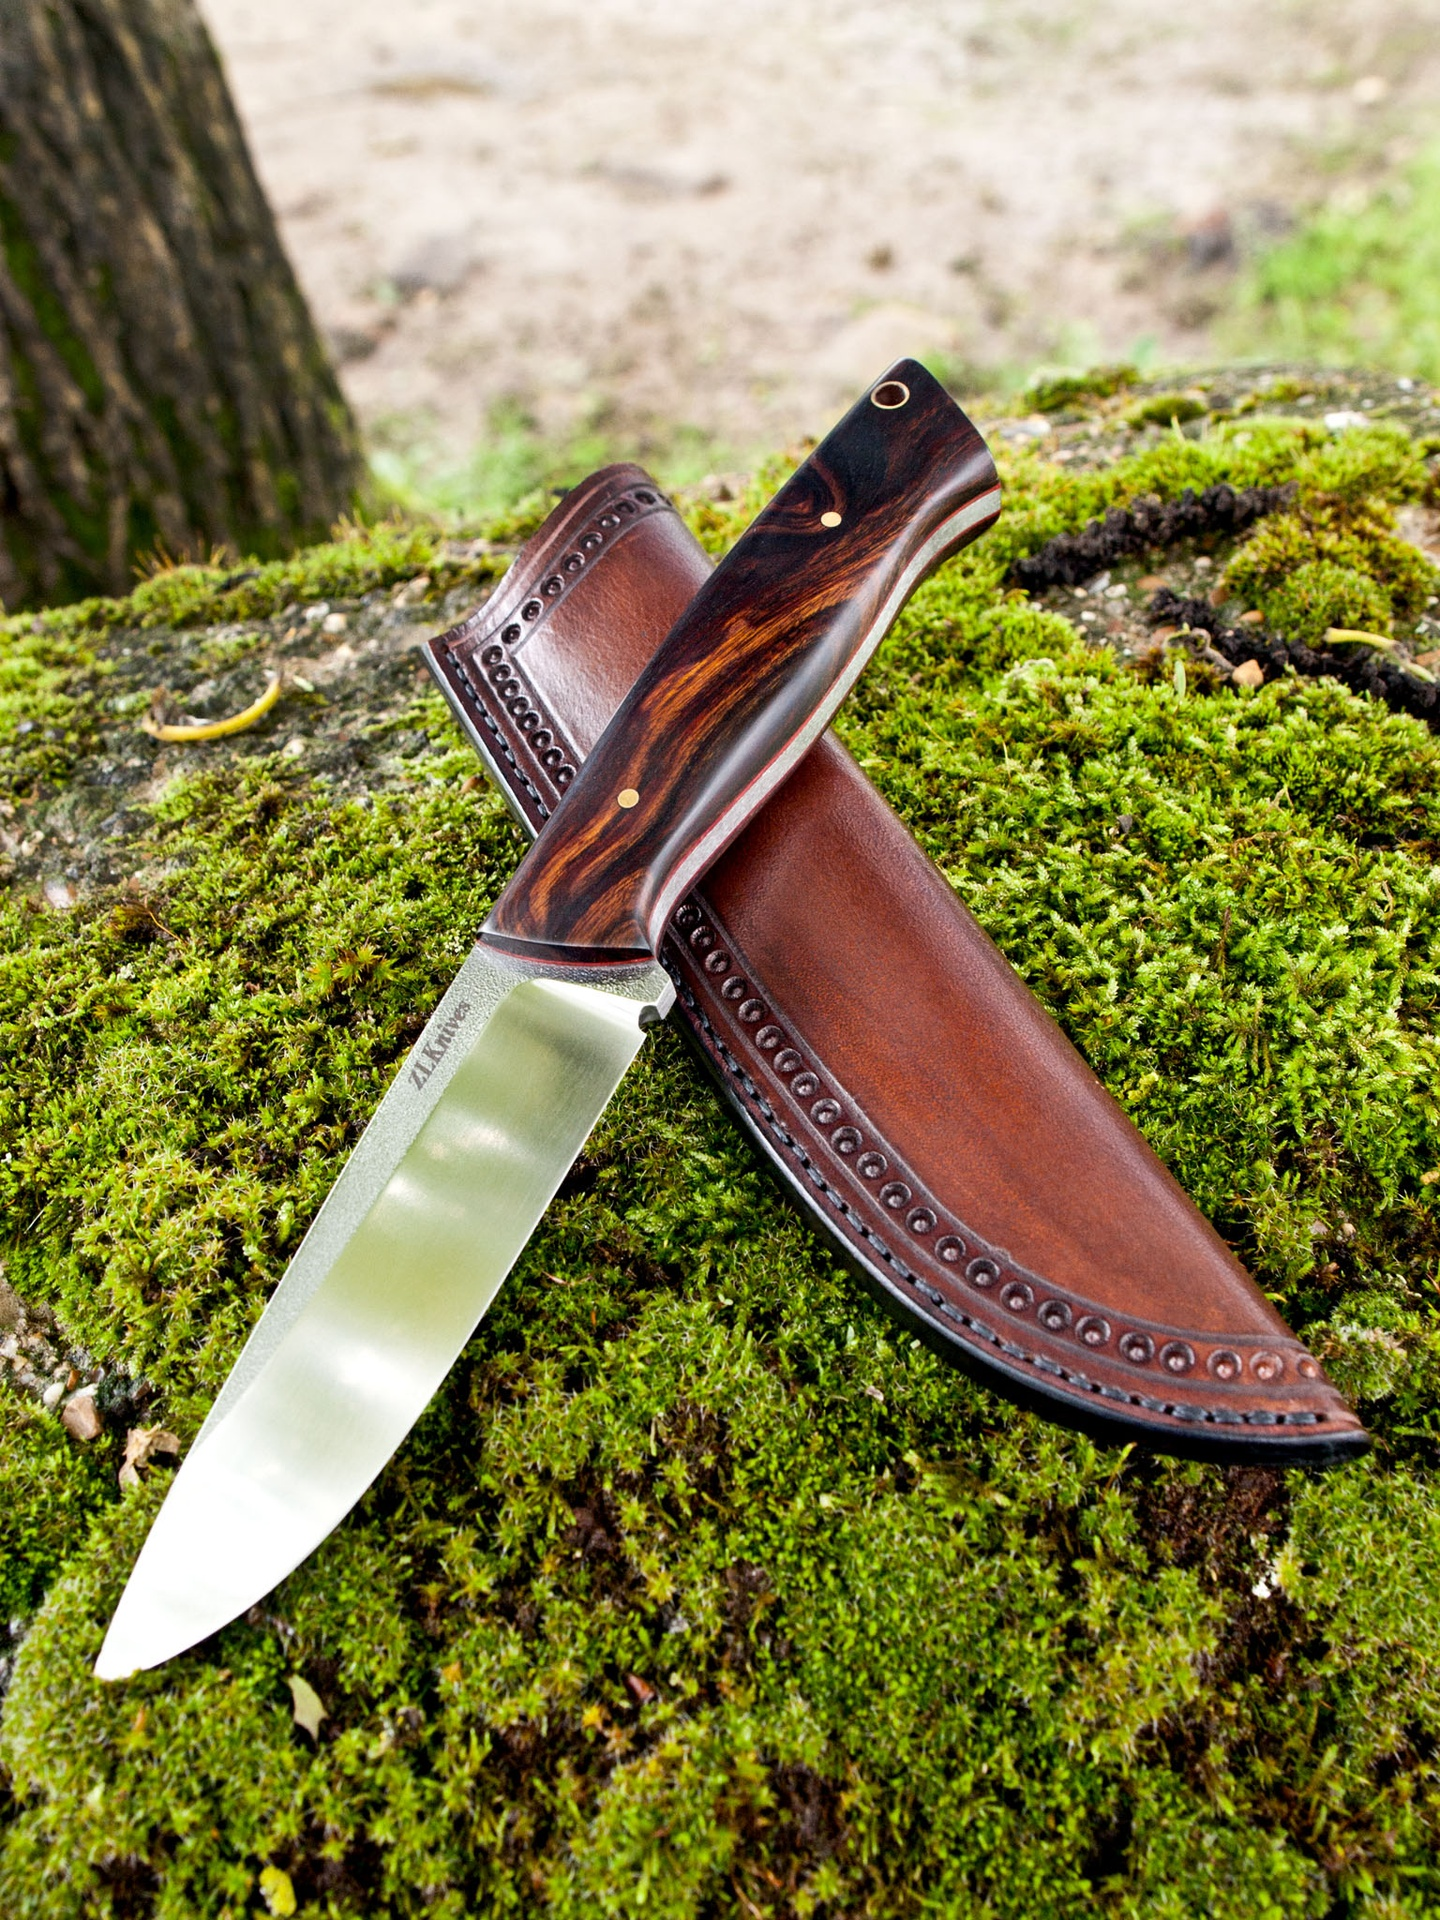 Handle scales are from Desert Ironwood